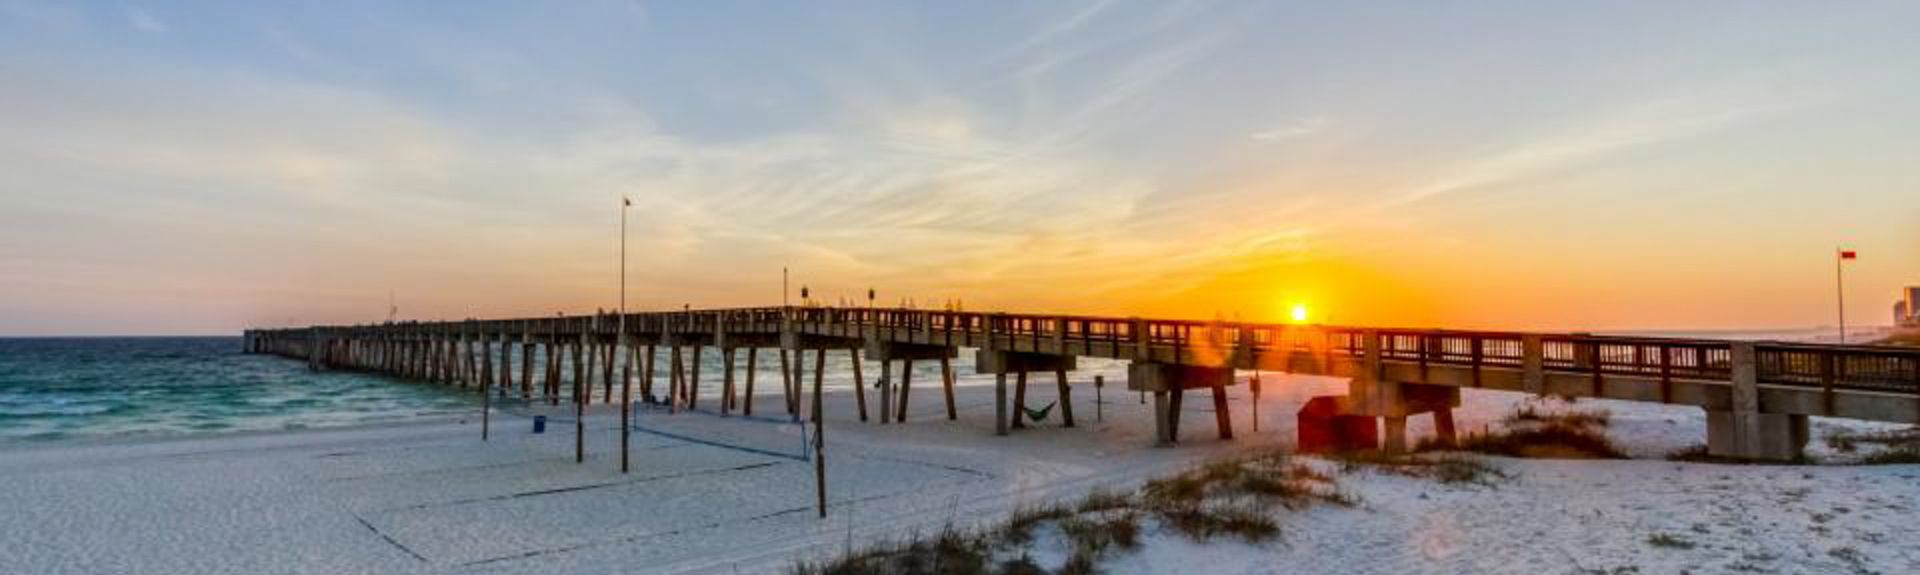 Marlin Cove, Panama City Beach, Florida, United States of America